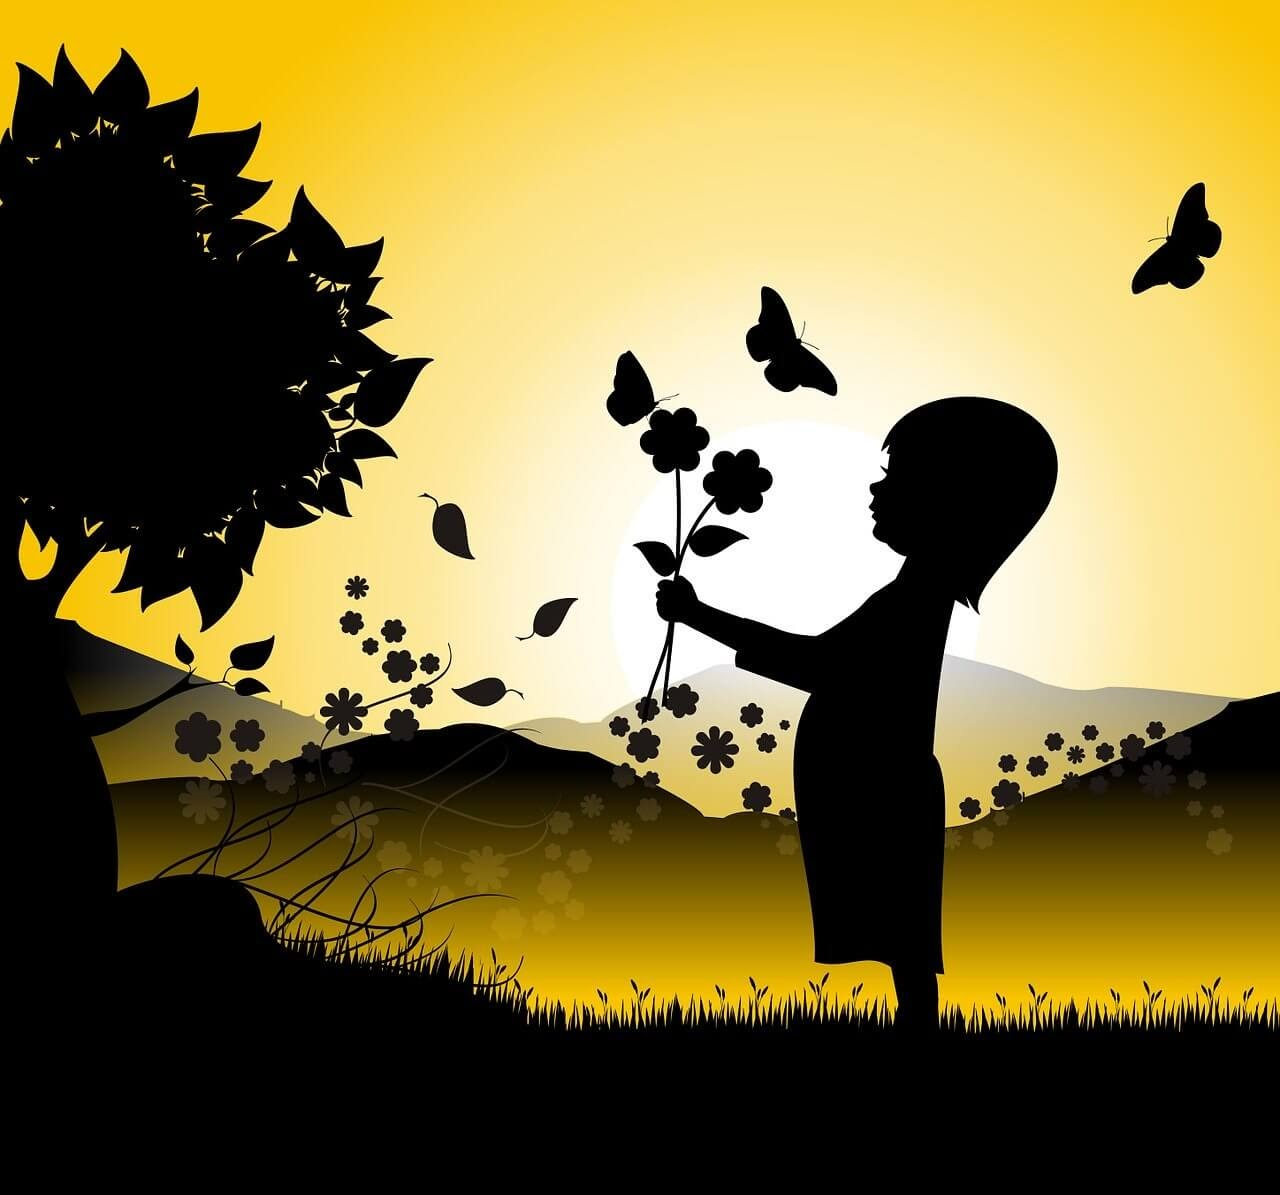 a child with butterflies at sunset used in enouraging life quotes article.jpg